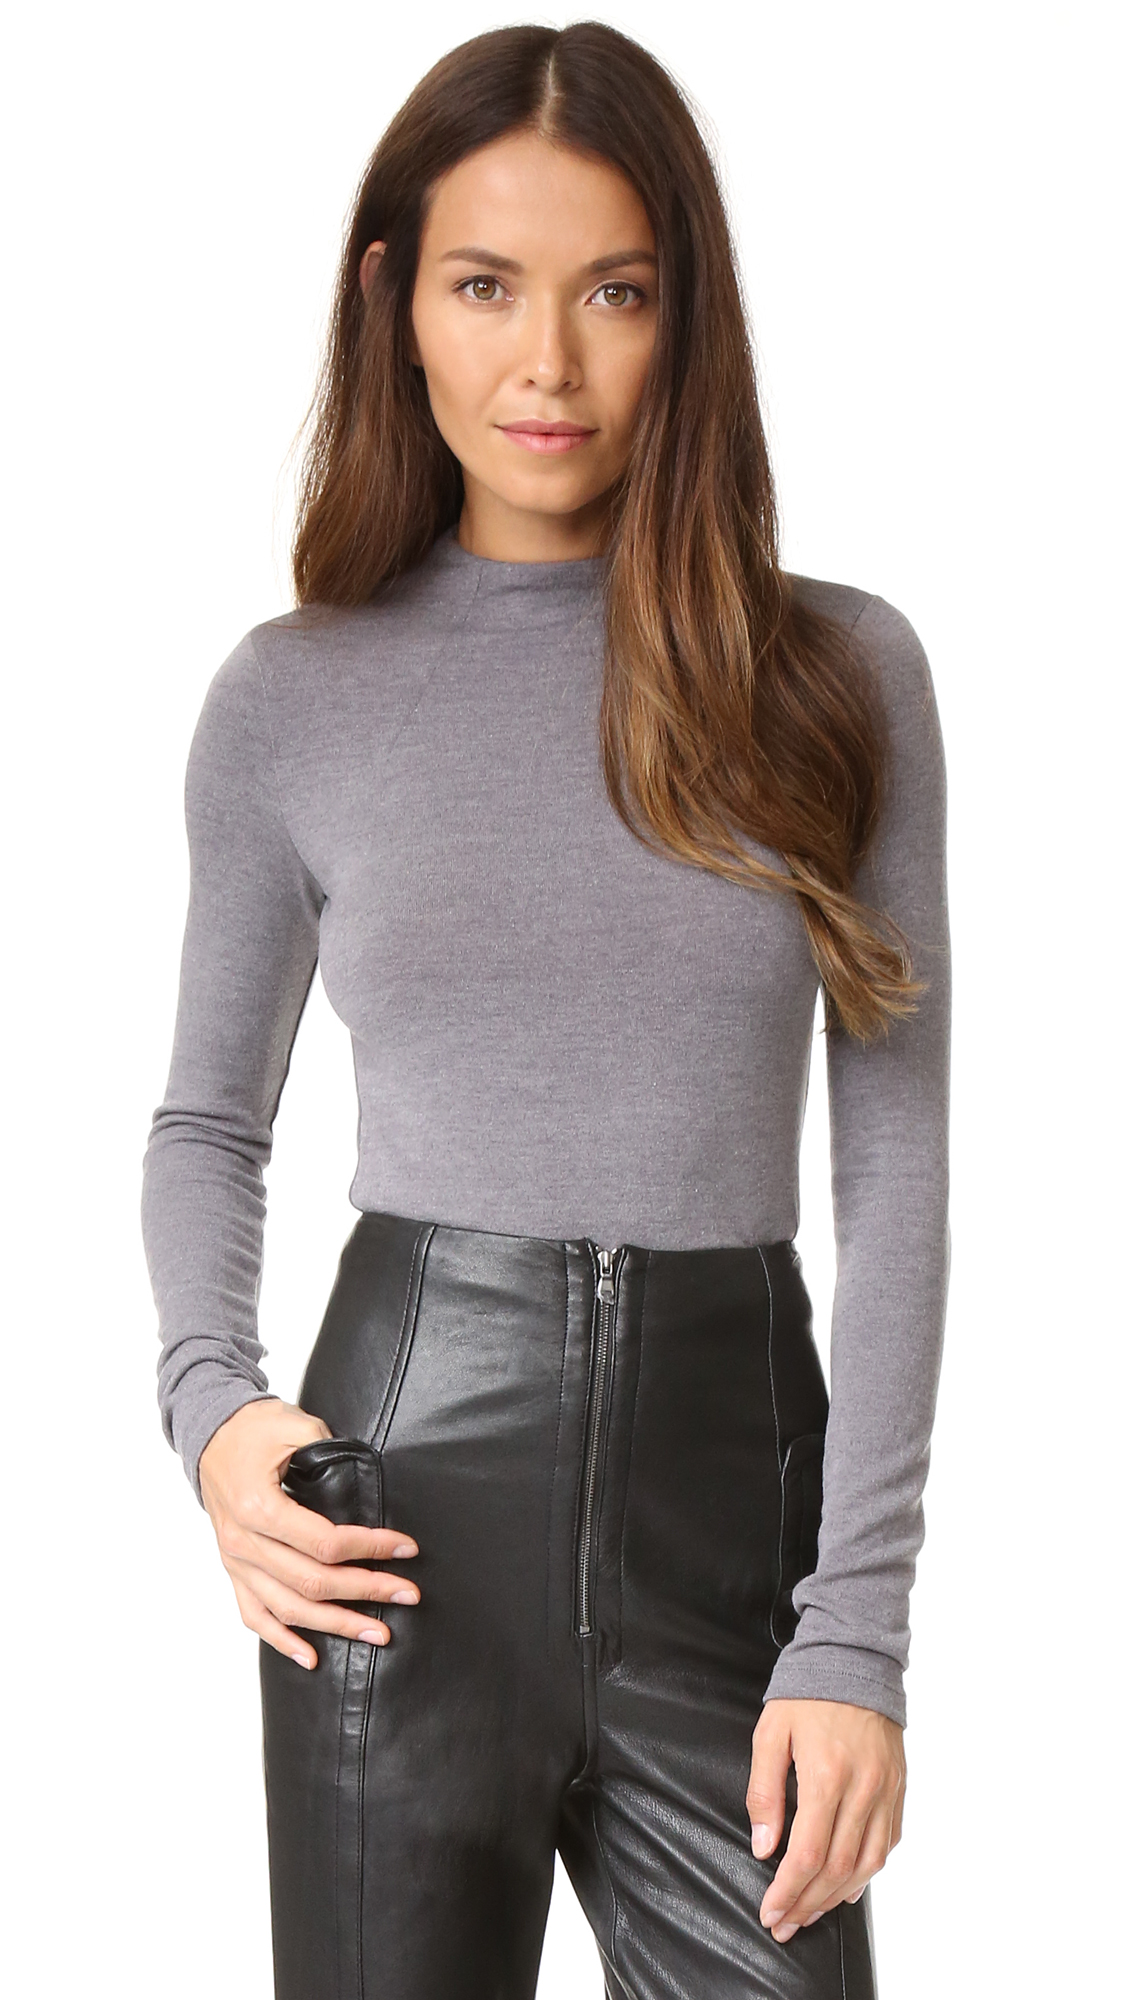 alice + olivia Genova Fitted Sweater - Heather Grey Melange